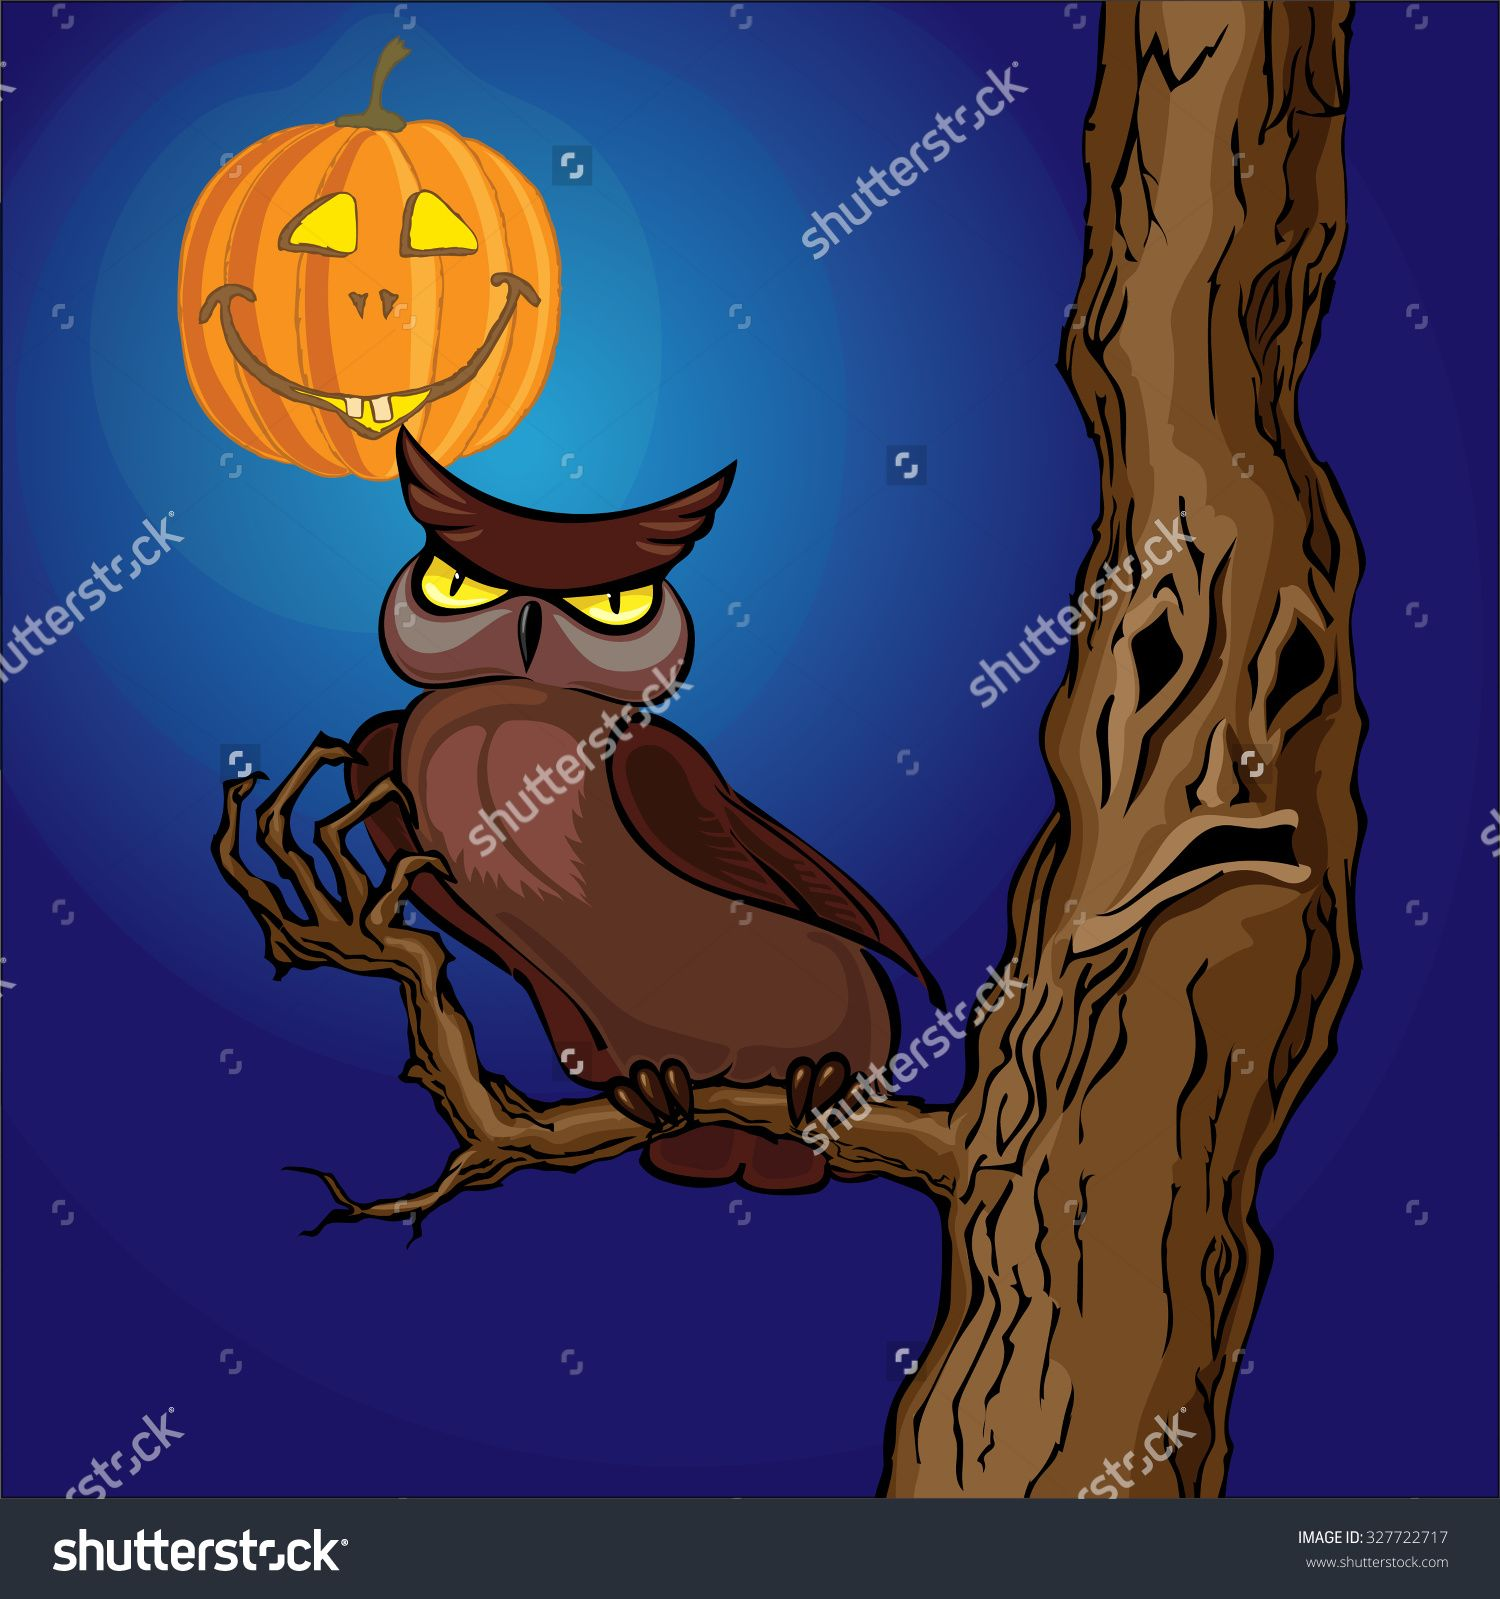 Scary Tree With Owl And Pumpkin Stock Vector Illustratie 327722717 : Shutterstock